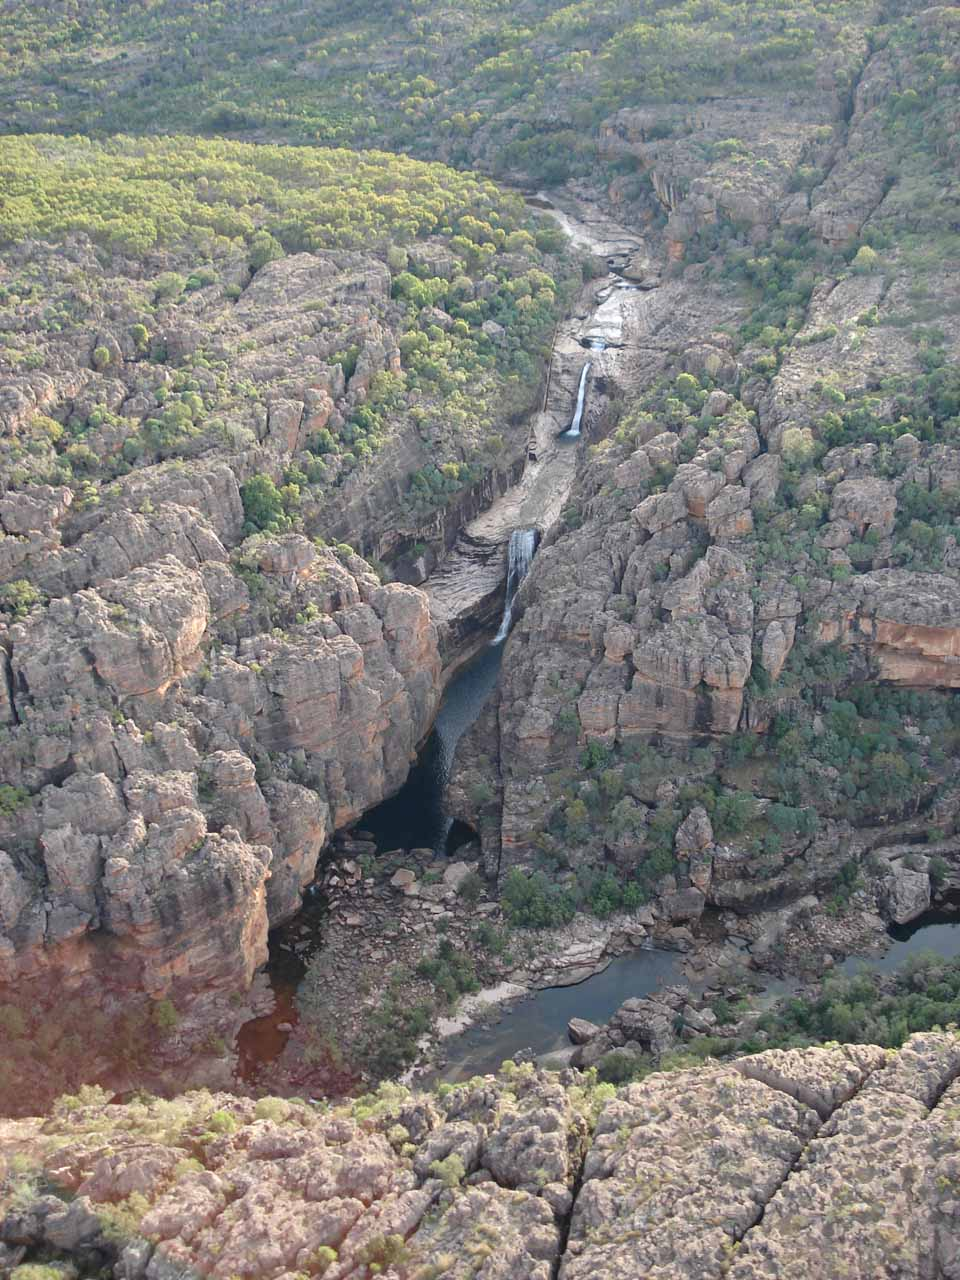 Double Falls viewed from a slightly different angle in the flyover